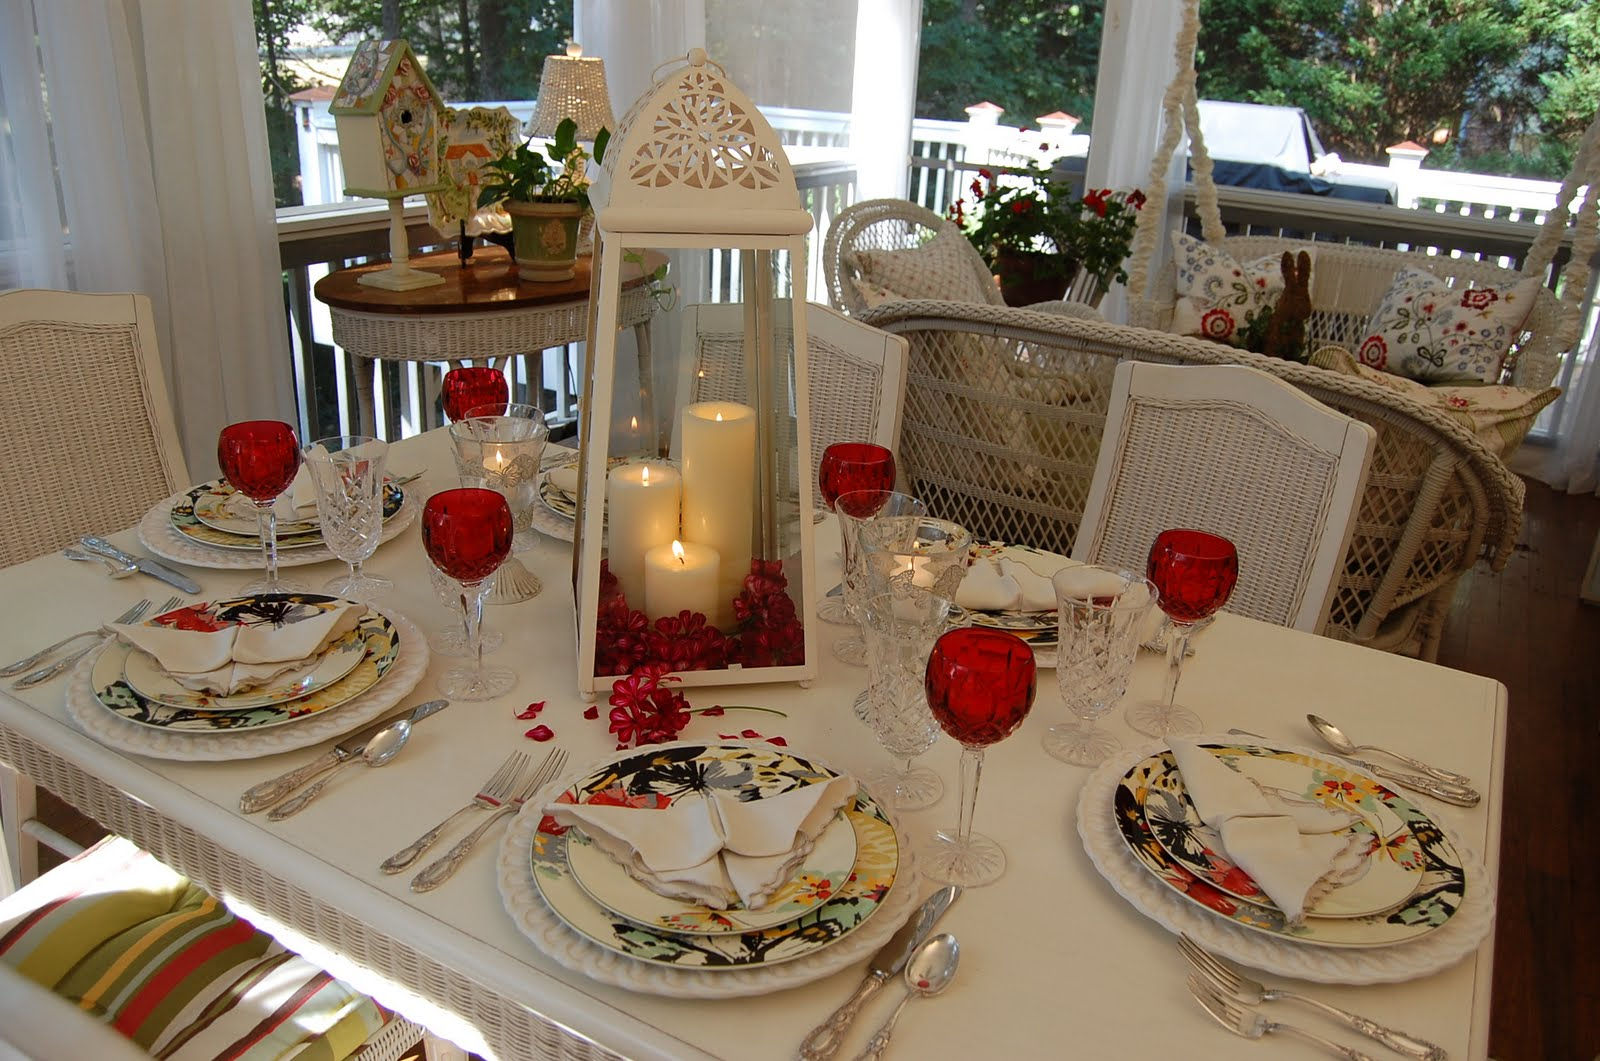 Romantic Candlelight Table Setting